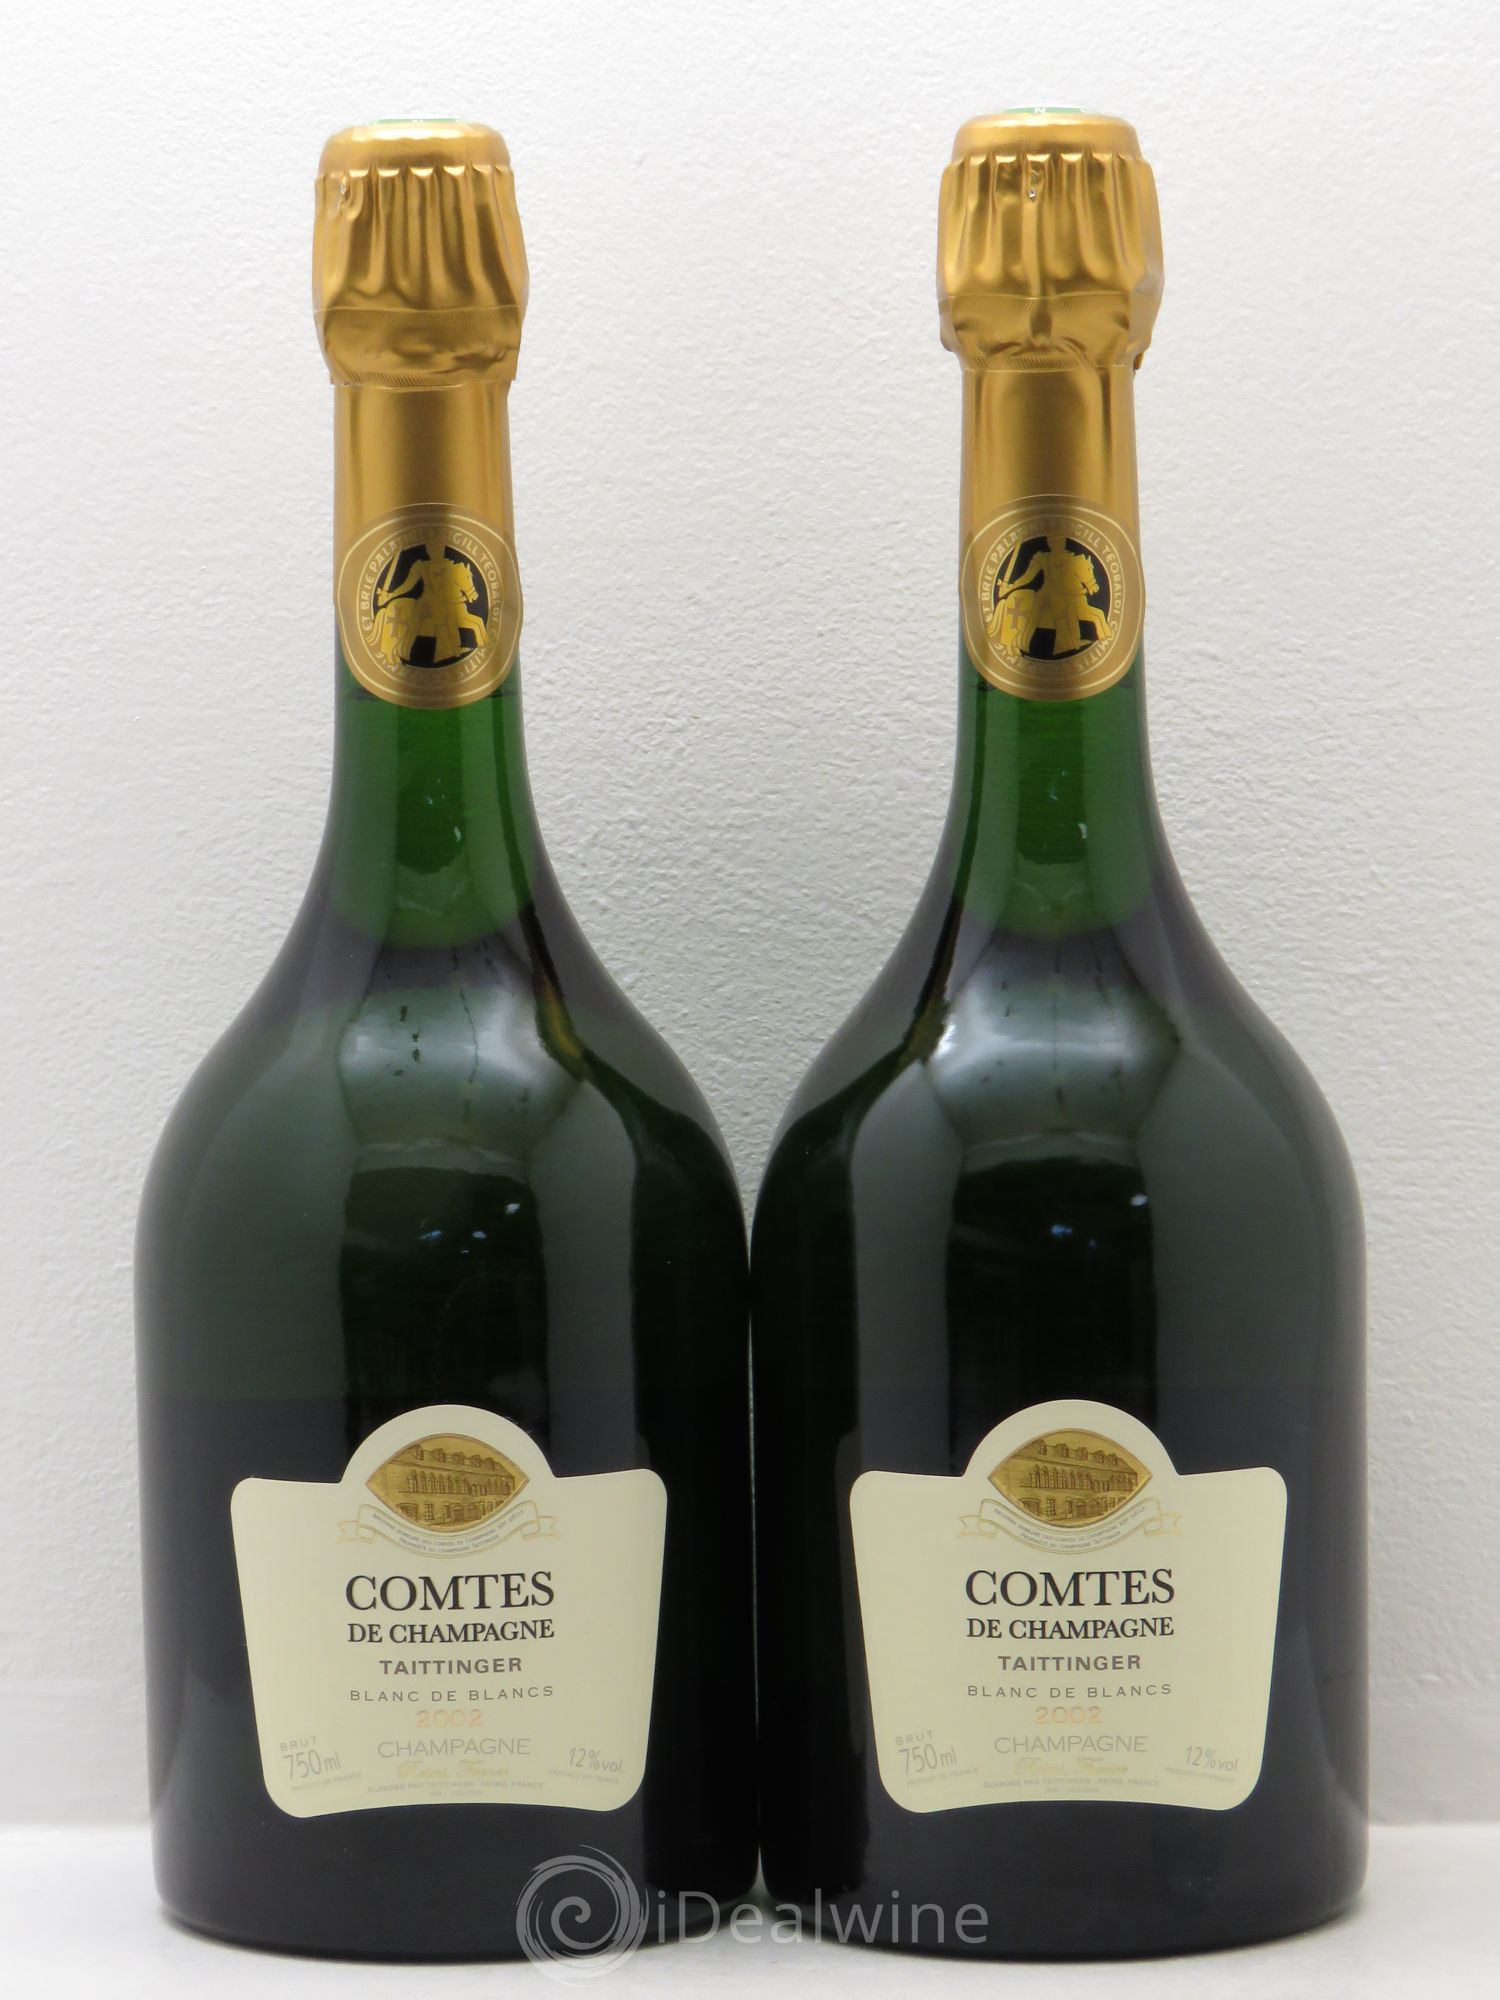 acheter comtes de champagne champagne taittinger 2002 lot 1546. Black Bedroom Furniture Sets. Home Design Ideas